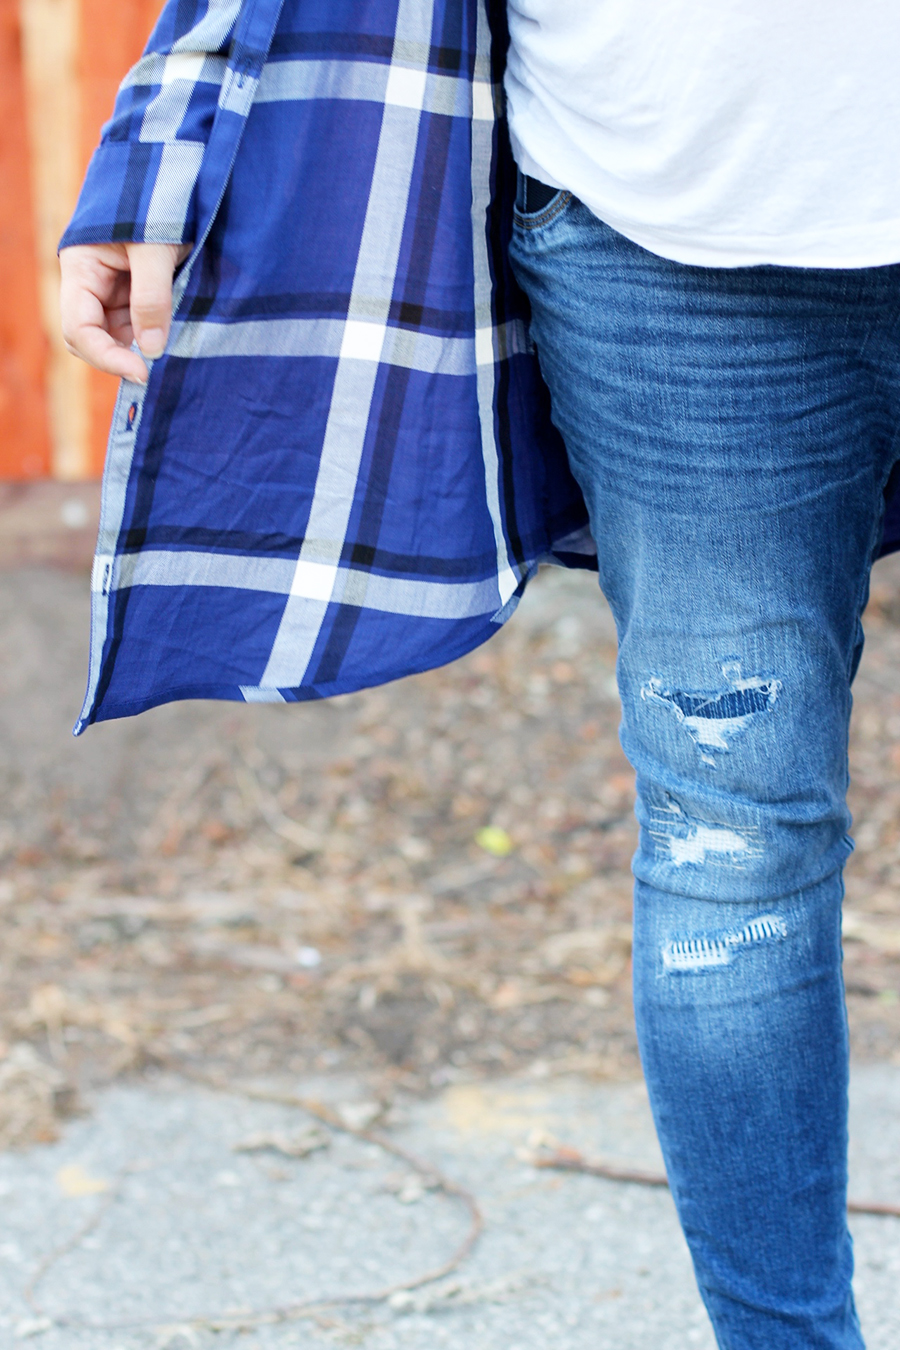 Plaid Shirtdress-Maternity Style-Styling Your Baby Bump-Styling Tips-Pregnancy Style-Have Need Want